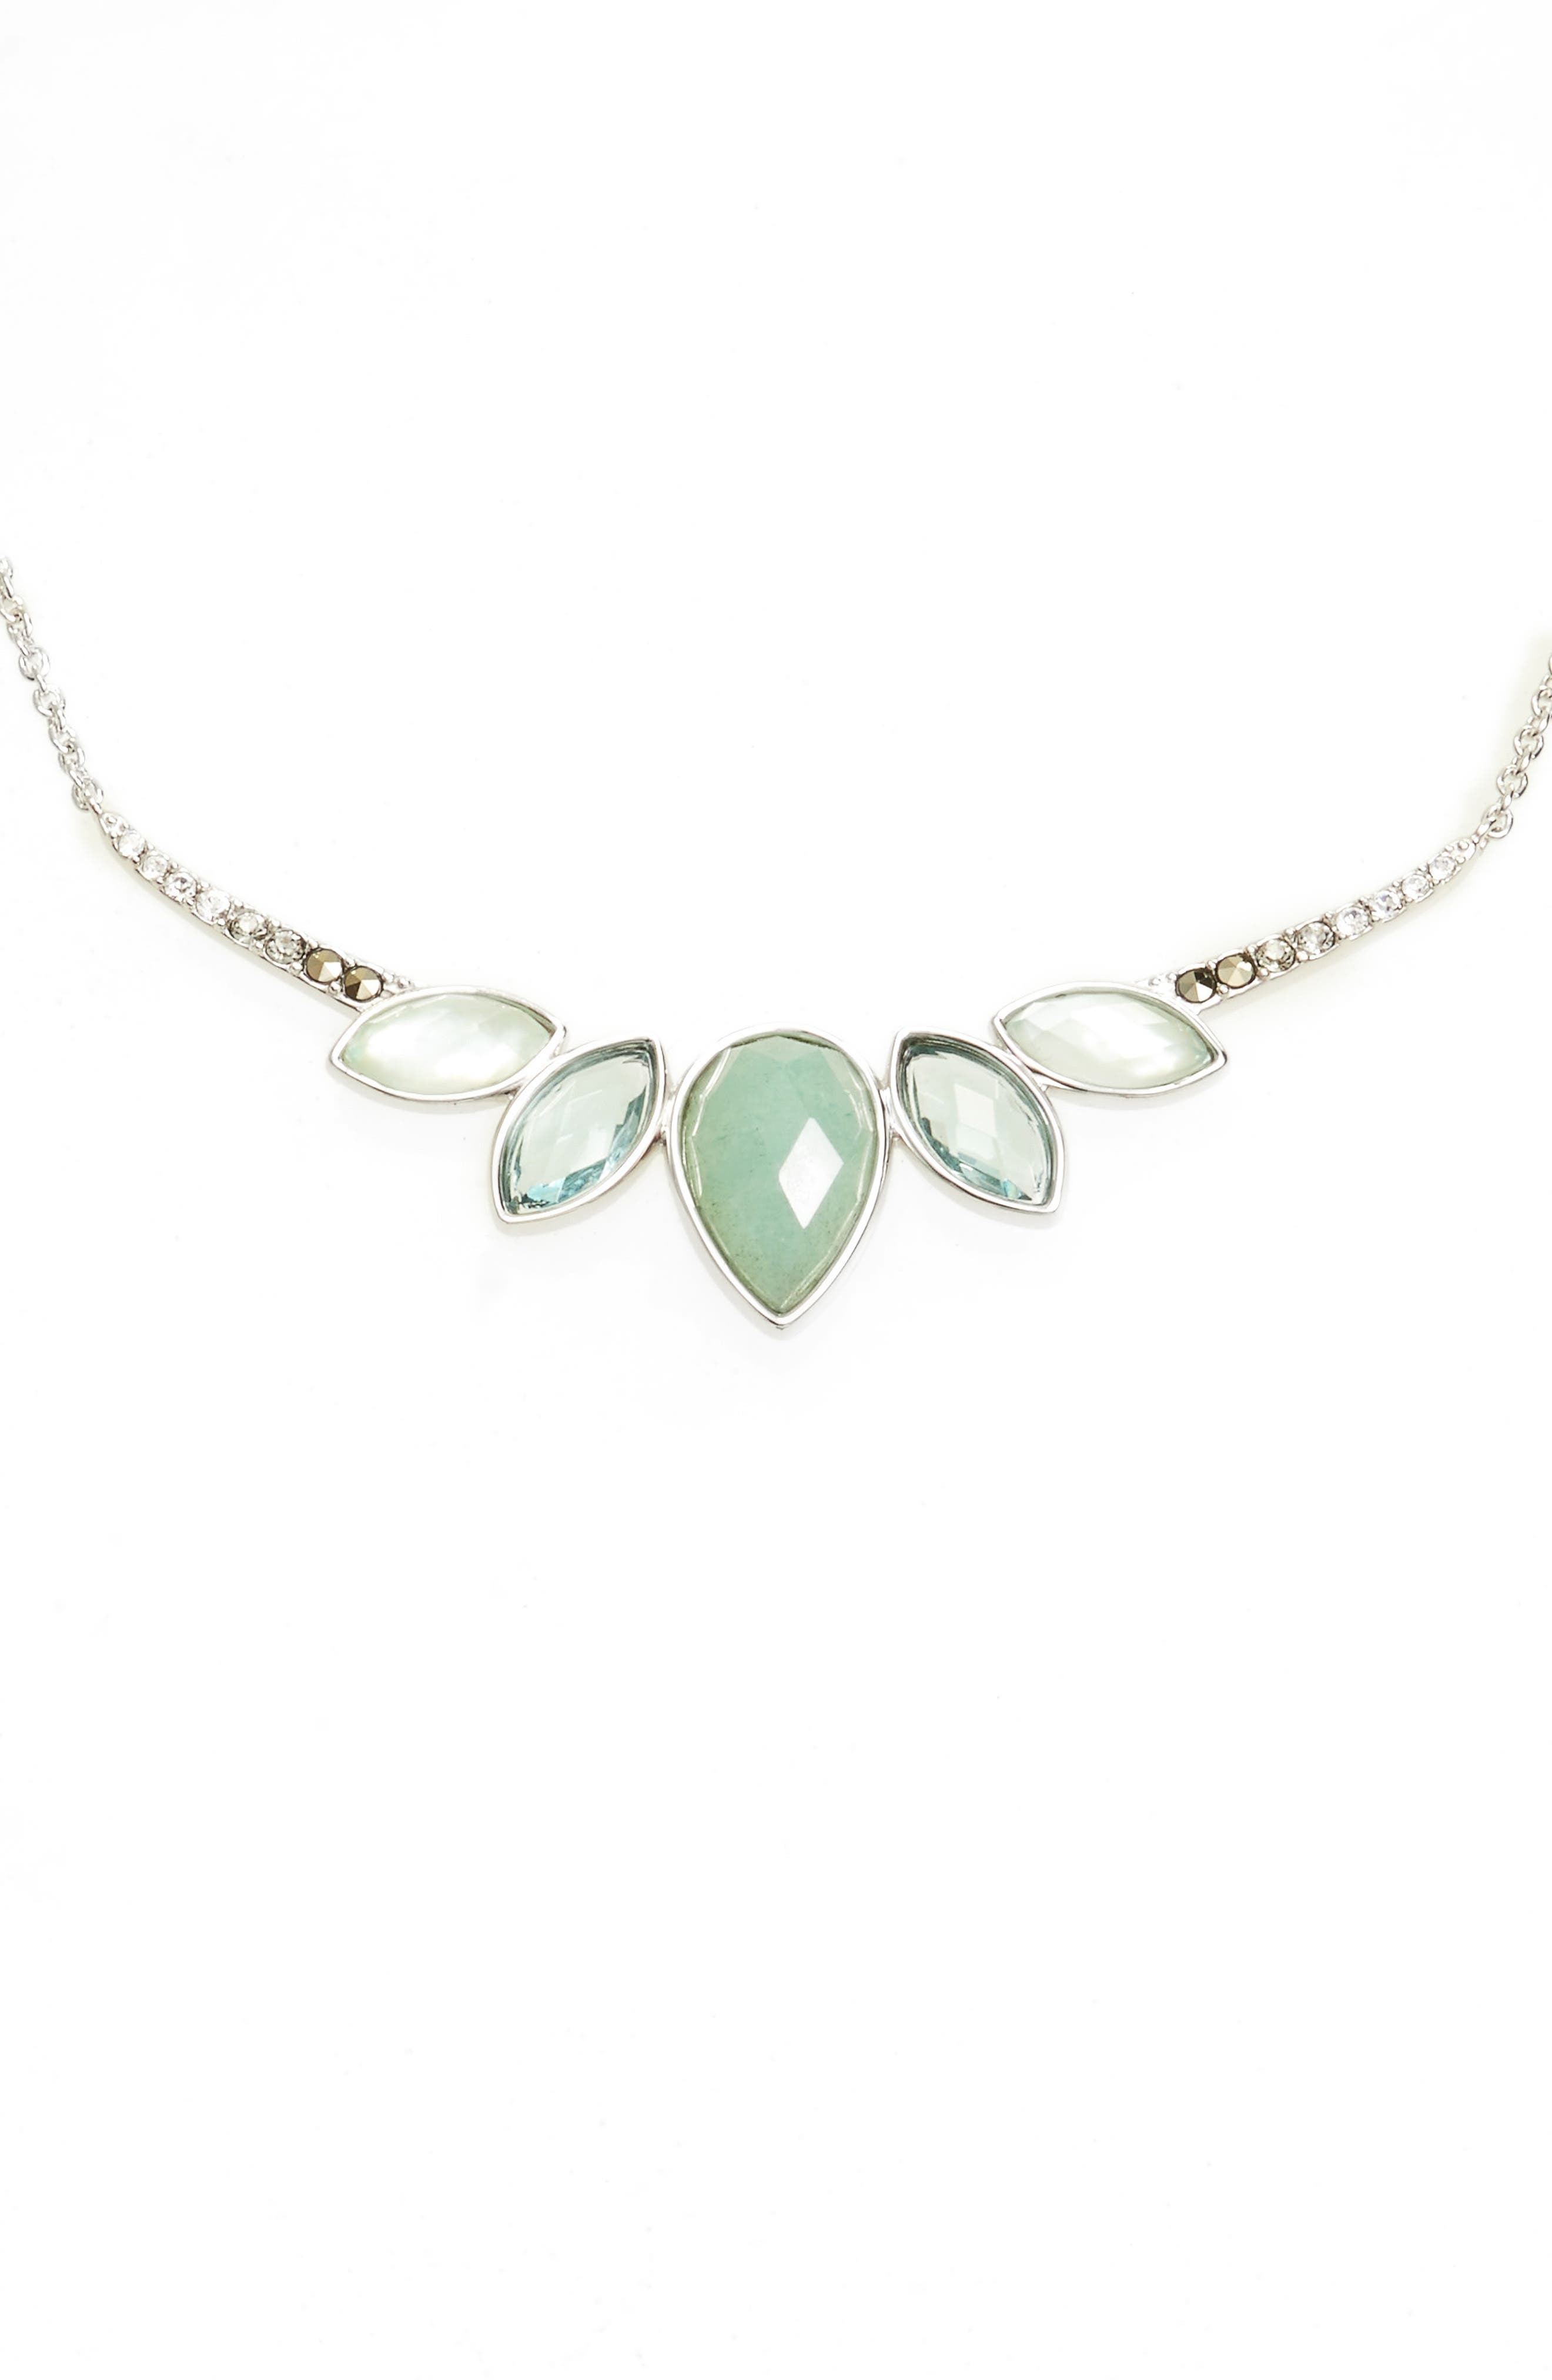 Lakeside Crystal Frontal Necklace,                         Main,                         color, Green/ Black Diamond